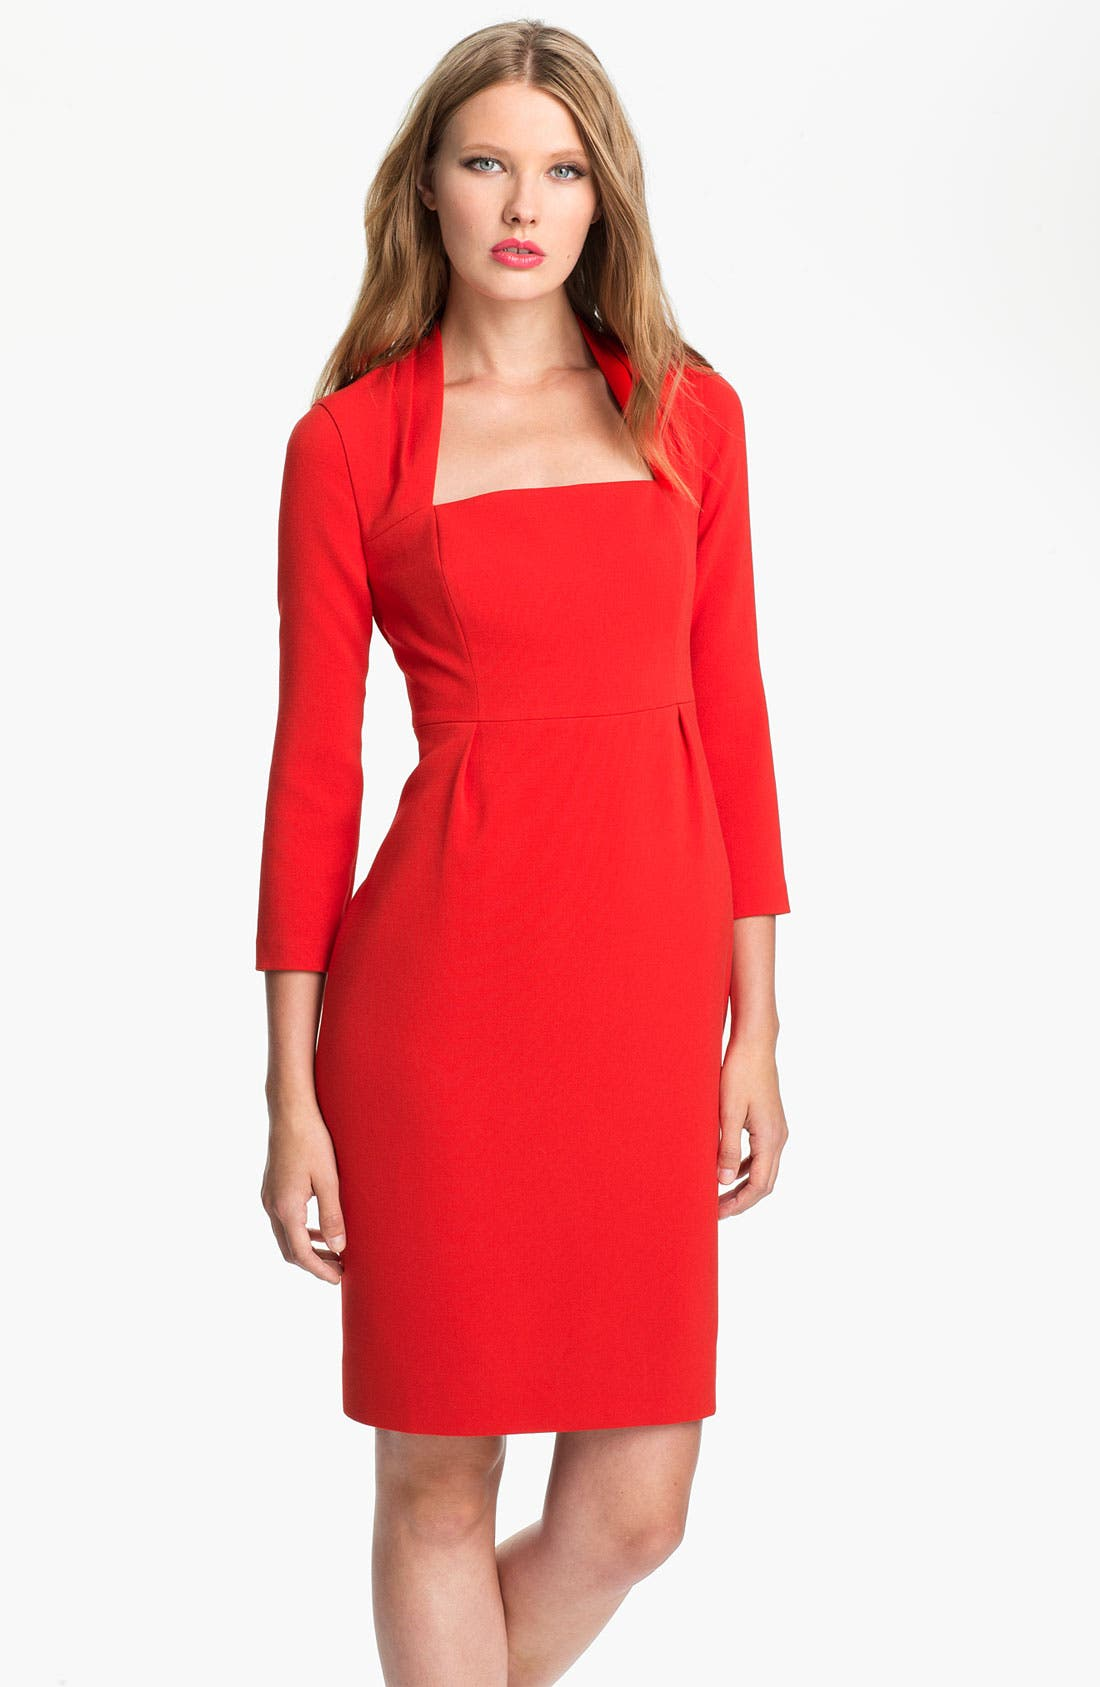 Main Image - kate spade new york 'shiella' woven sheath dress